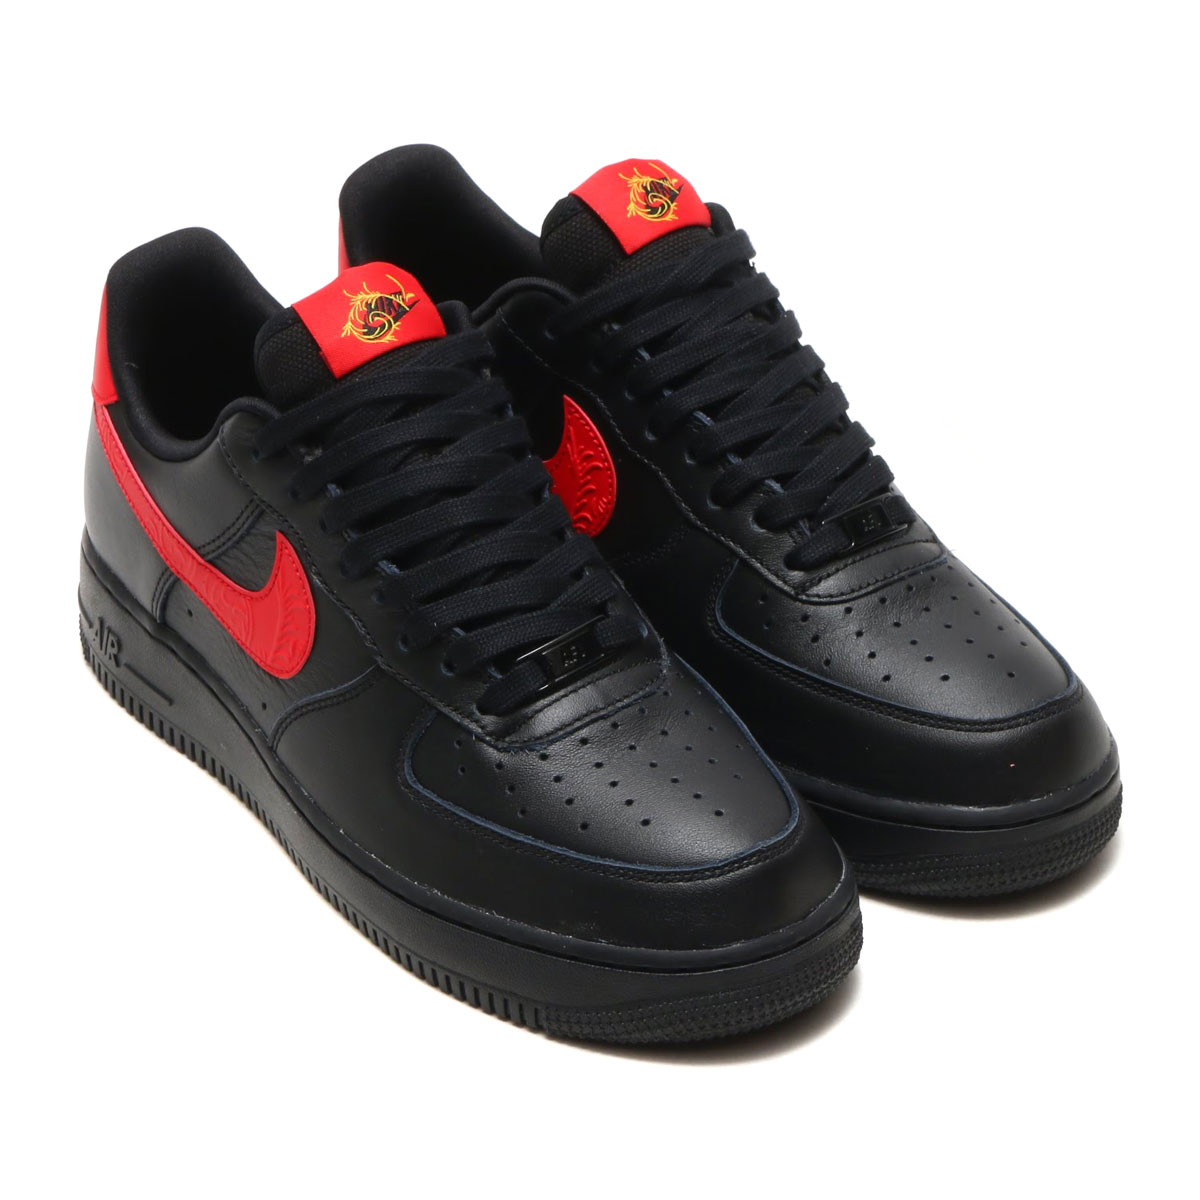 The masterpiece of the Nike basketball released in 1982. The constant  seller model that continues still attracting a fan after time when a  classic ...